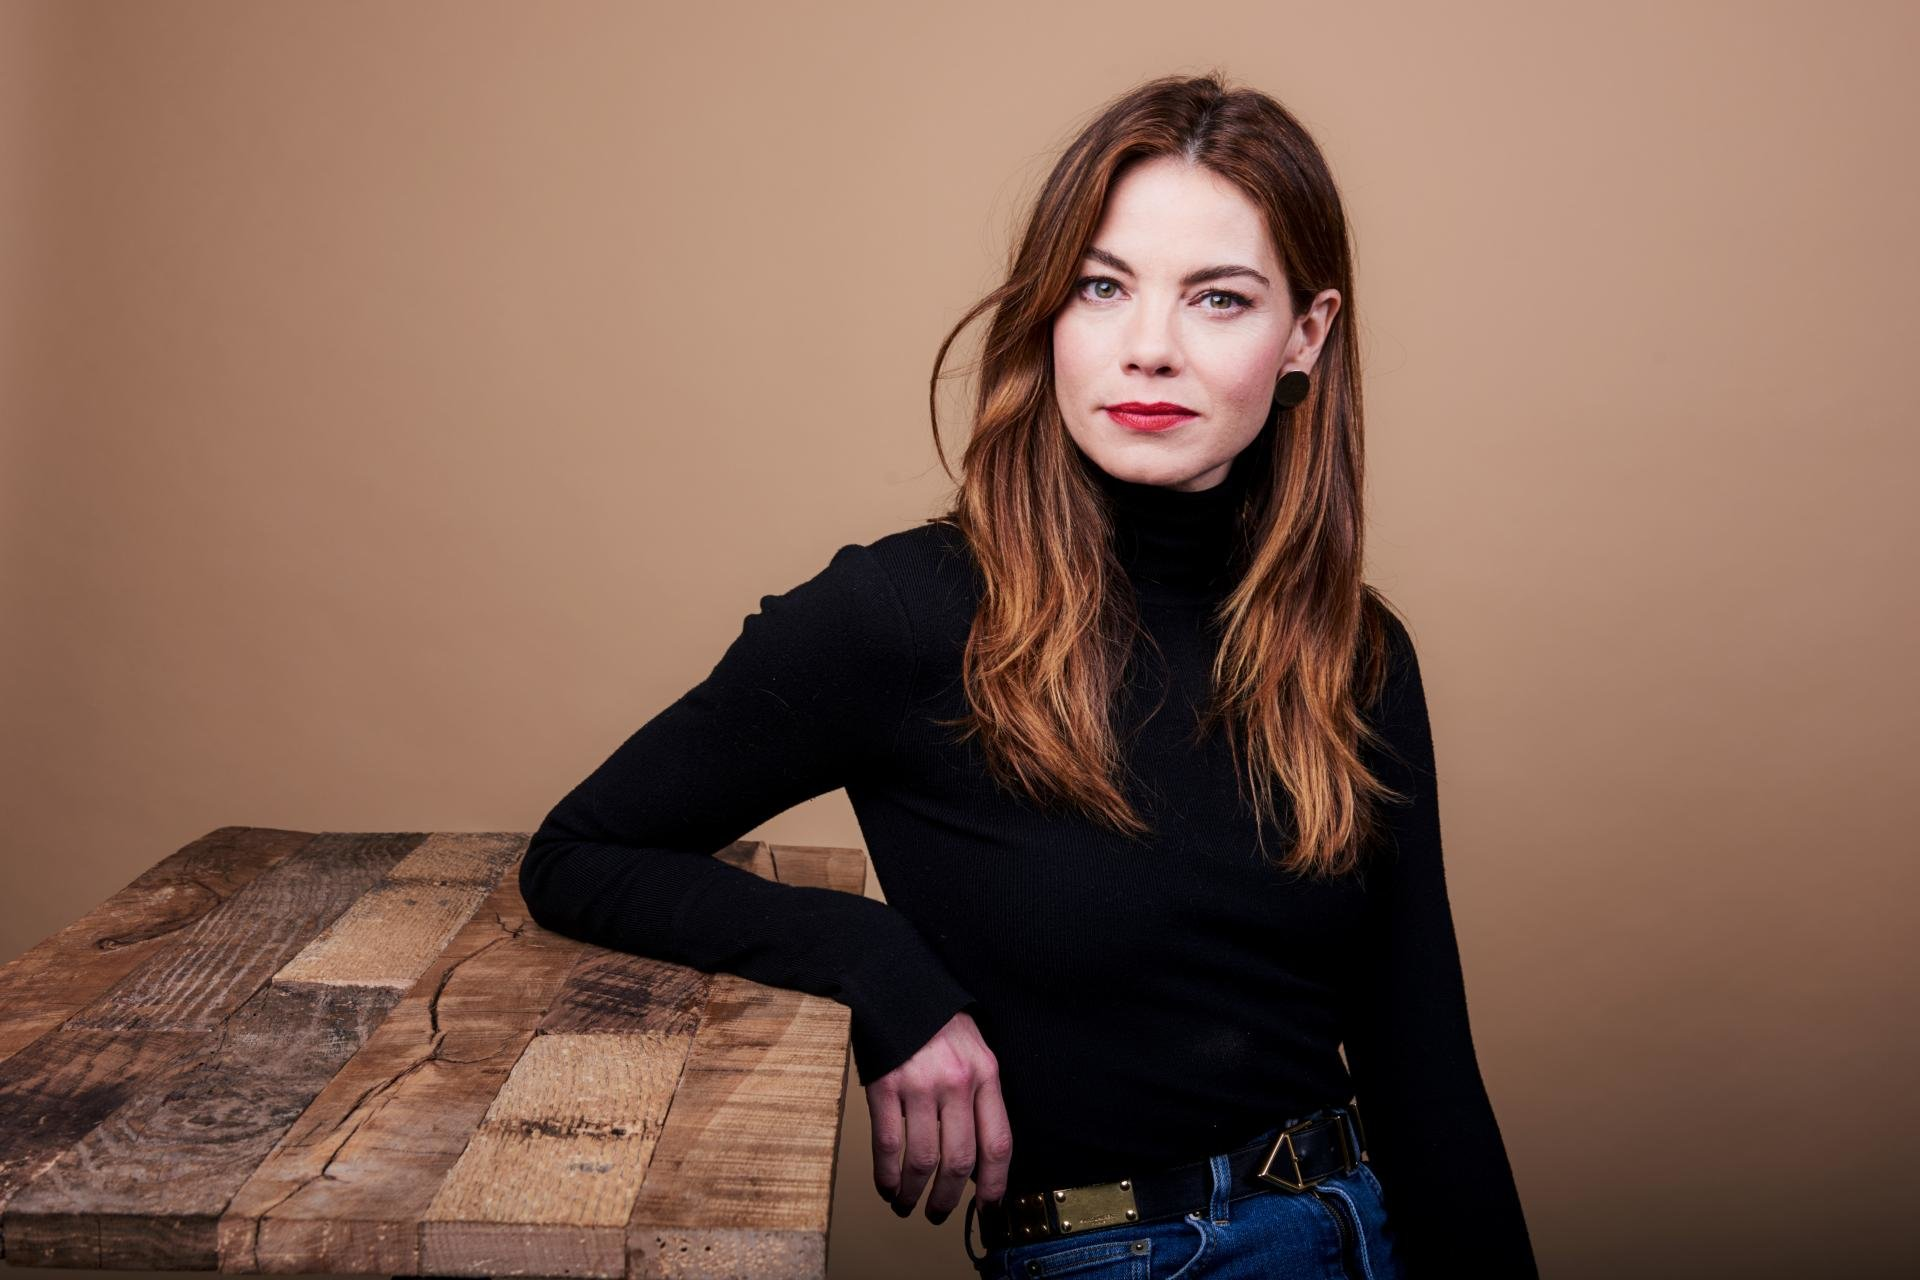 Awesome Michelle Monaghan free wallpaper ID:63126 for hd 1920x1280 computer